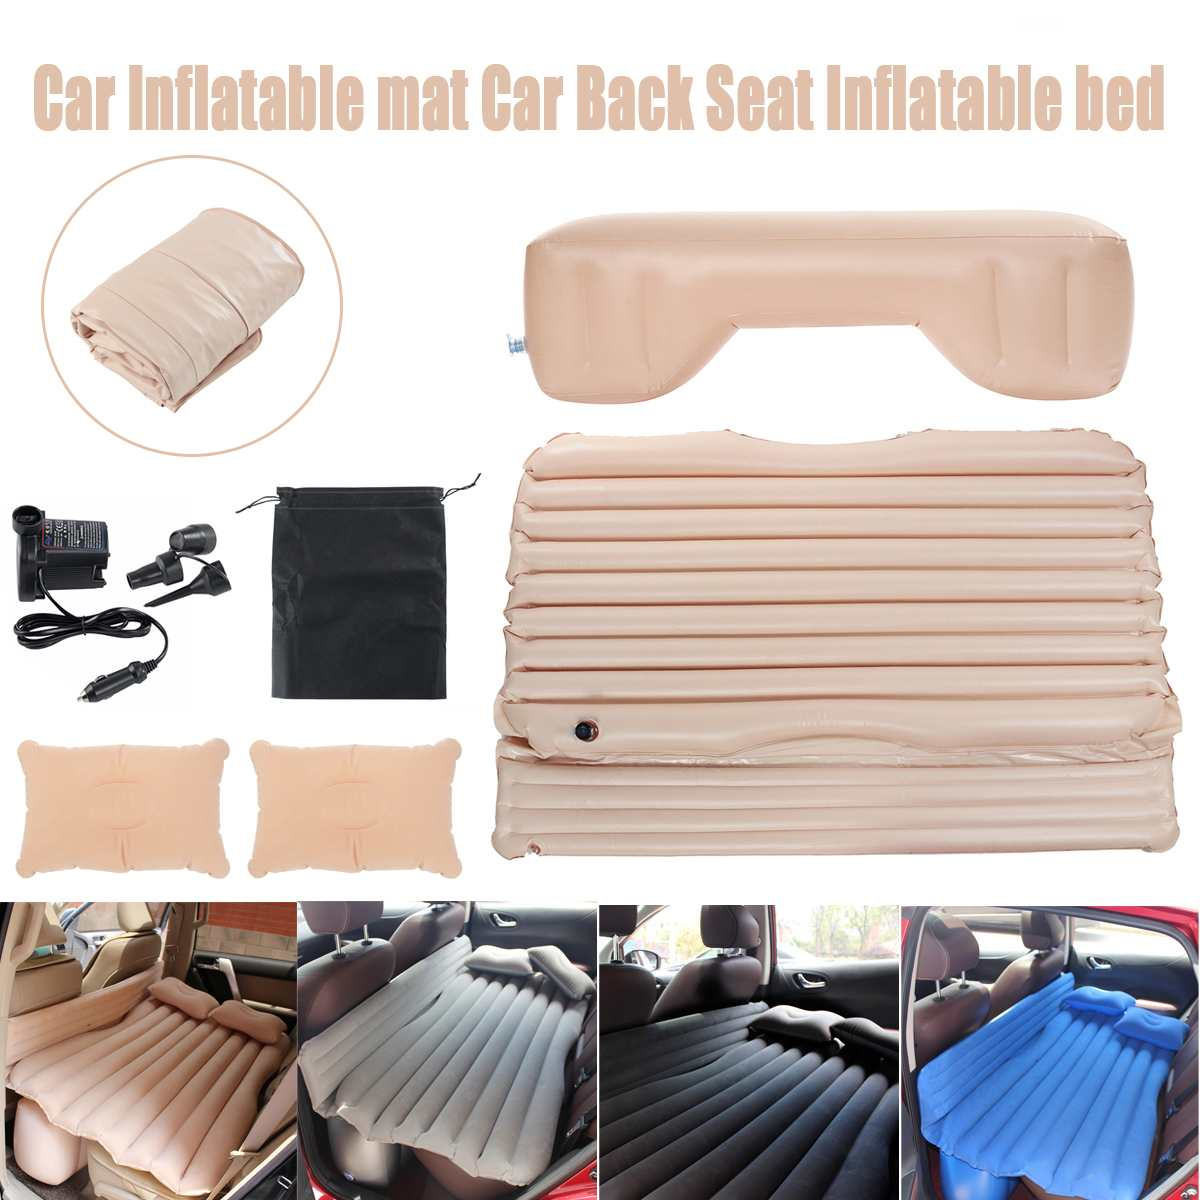 Black/Gray/Beige/Blue Car Inflatable Mat Outdoor Traveling Camping Folding Sleeping Bed Air Mattresses With Pillow And Pump